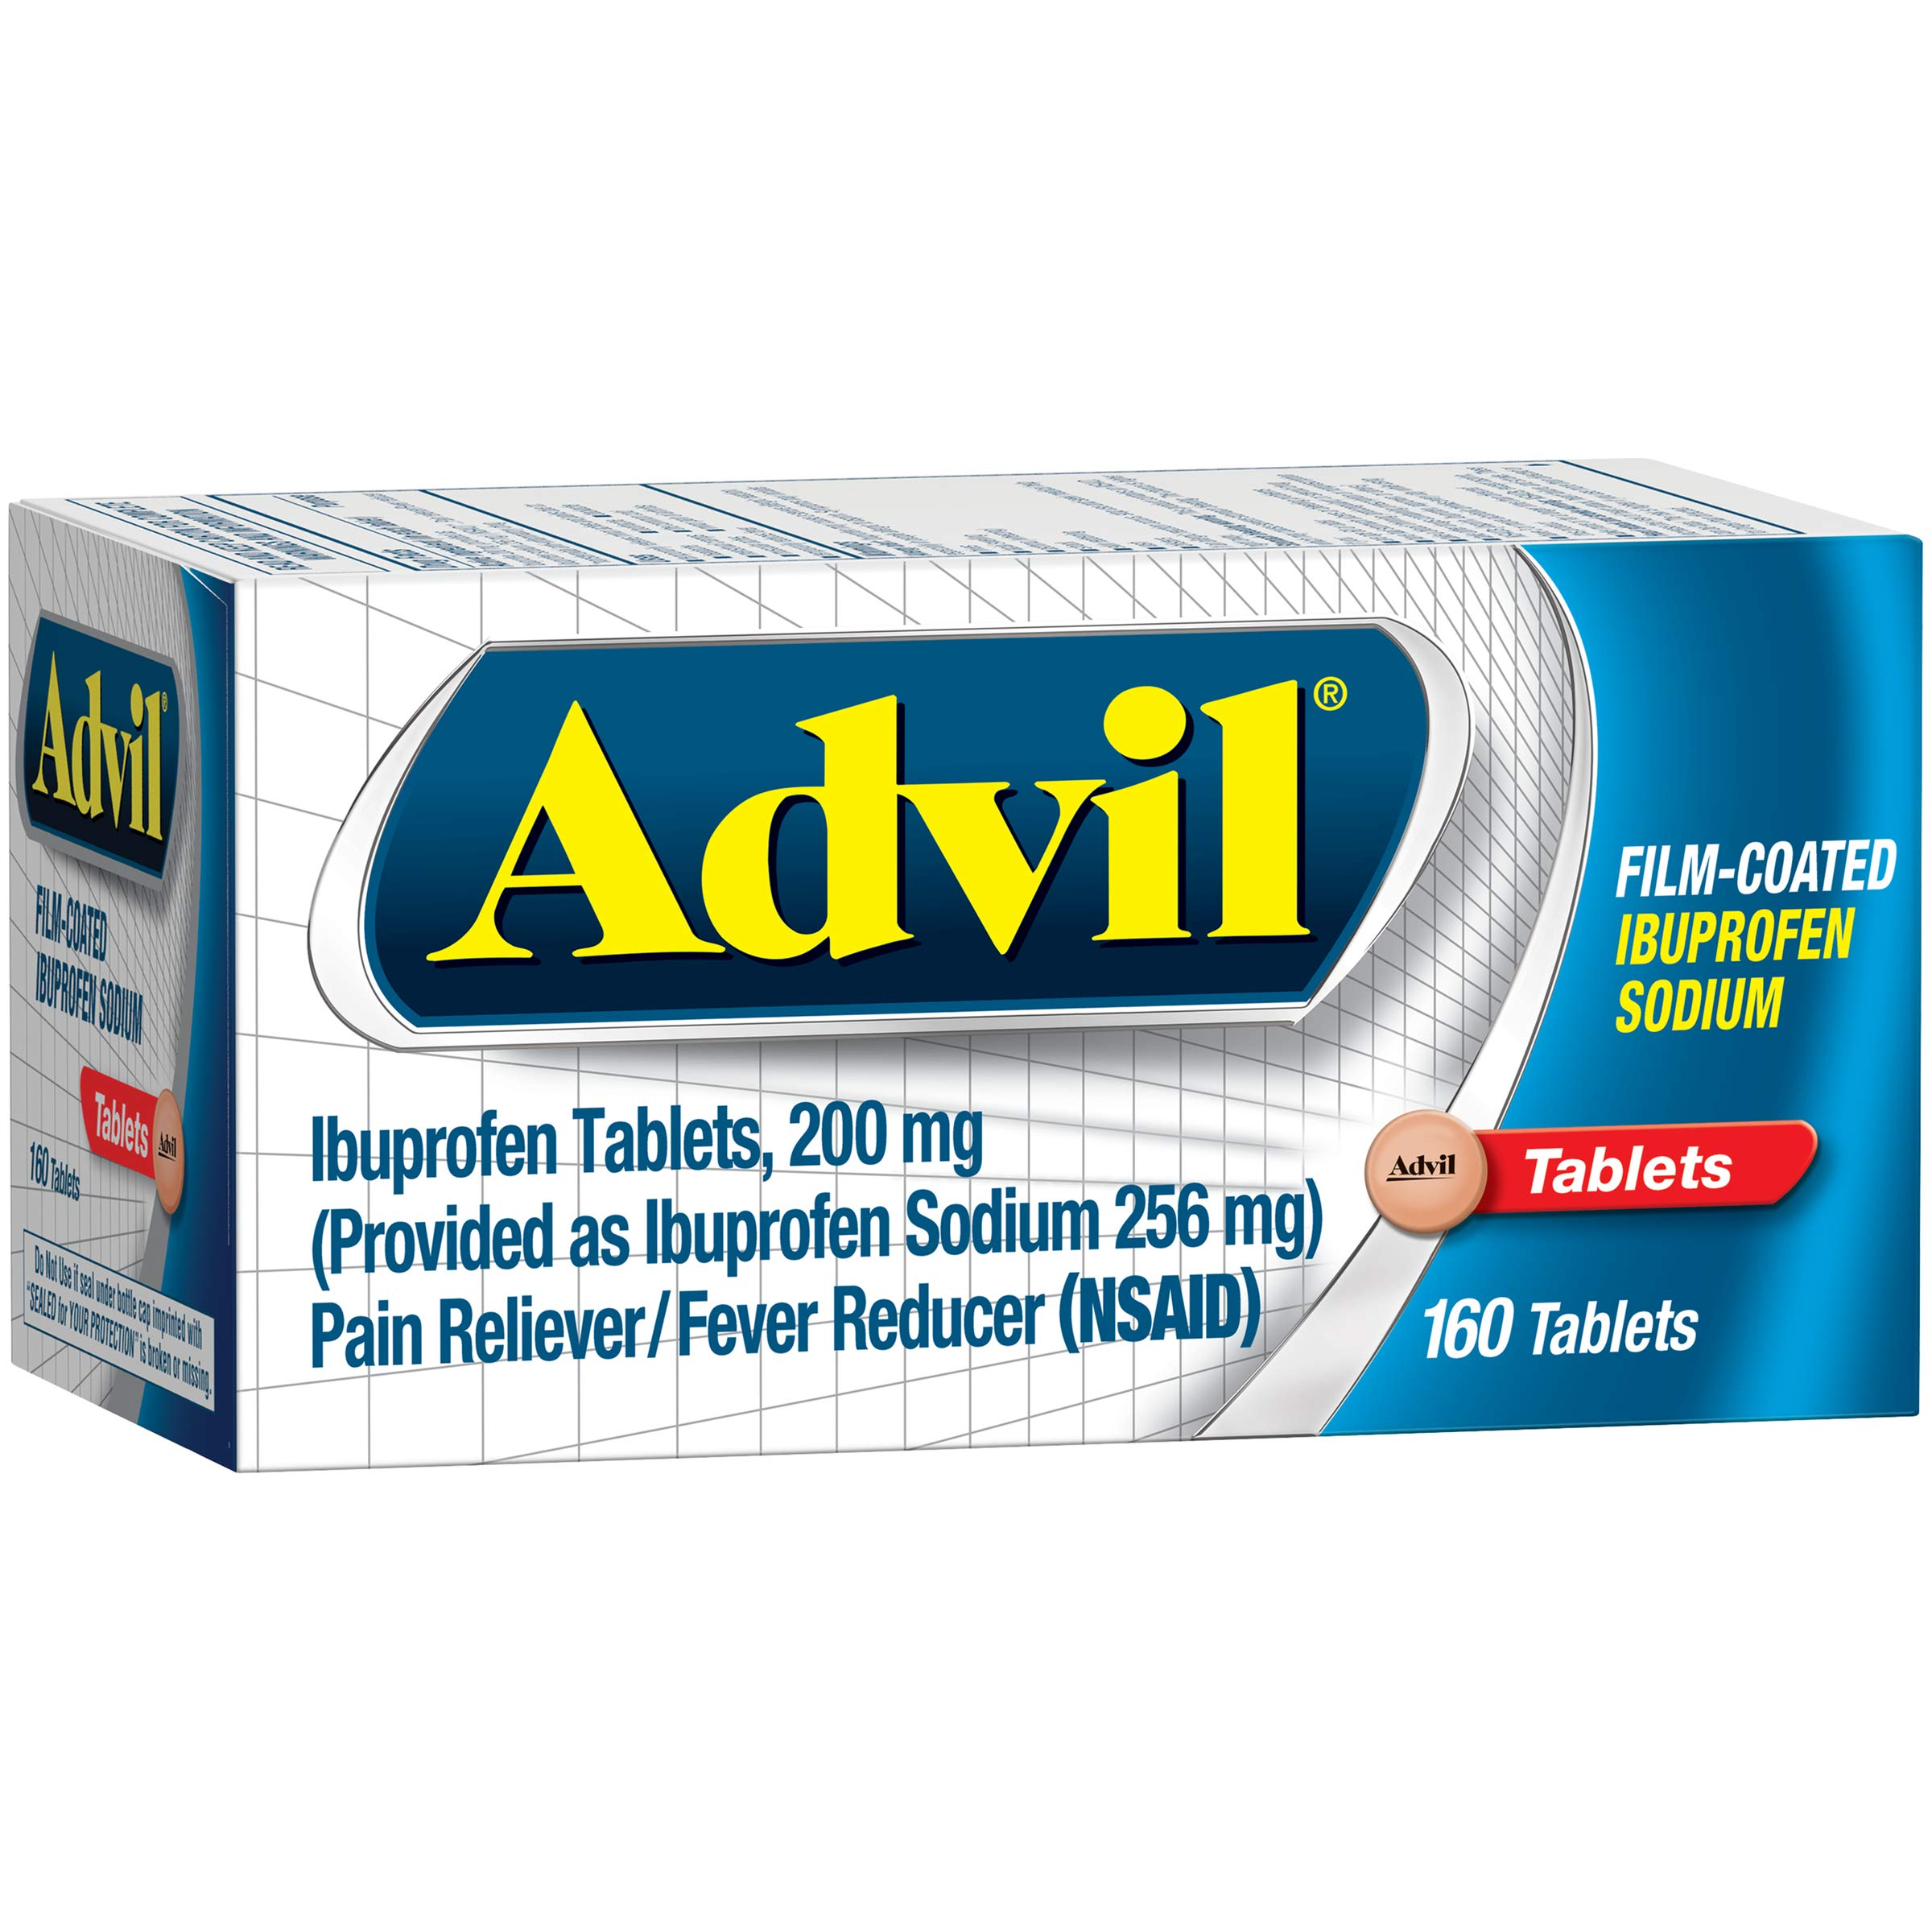 Advil (160 Count) Pain Reliever/Fever Reducer Film Coated Caplet, 200mg Ibuprofen, Rapid Release Formula, Temporary Pain Relief (Pack of 3) by Advil